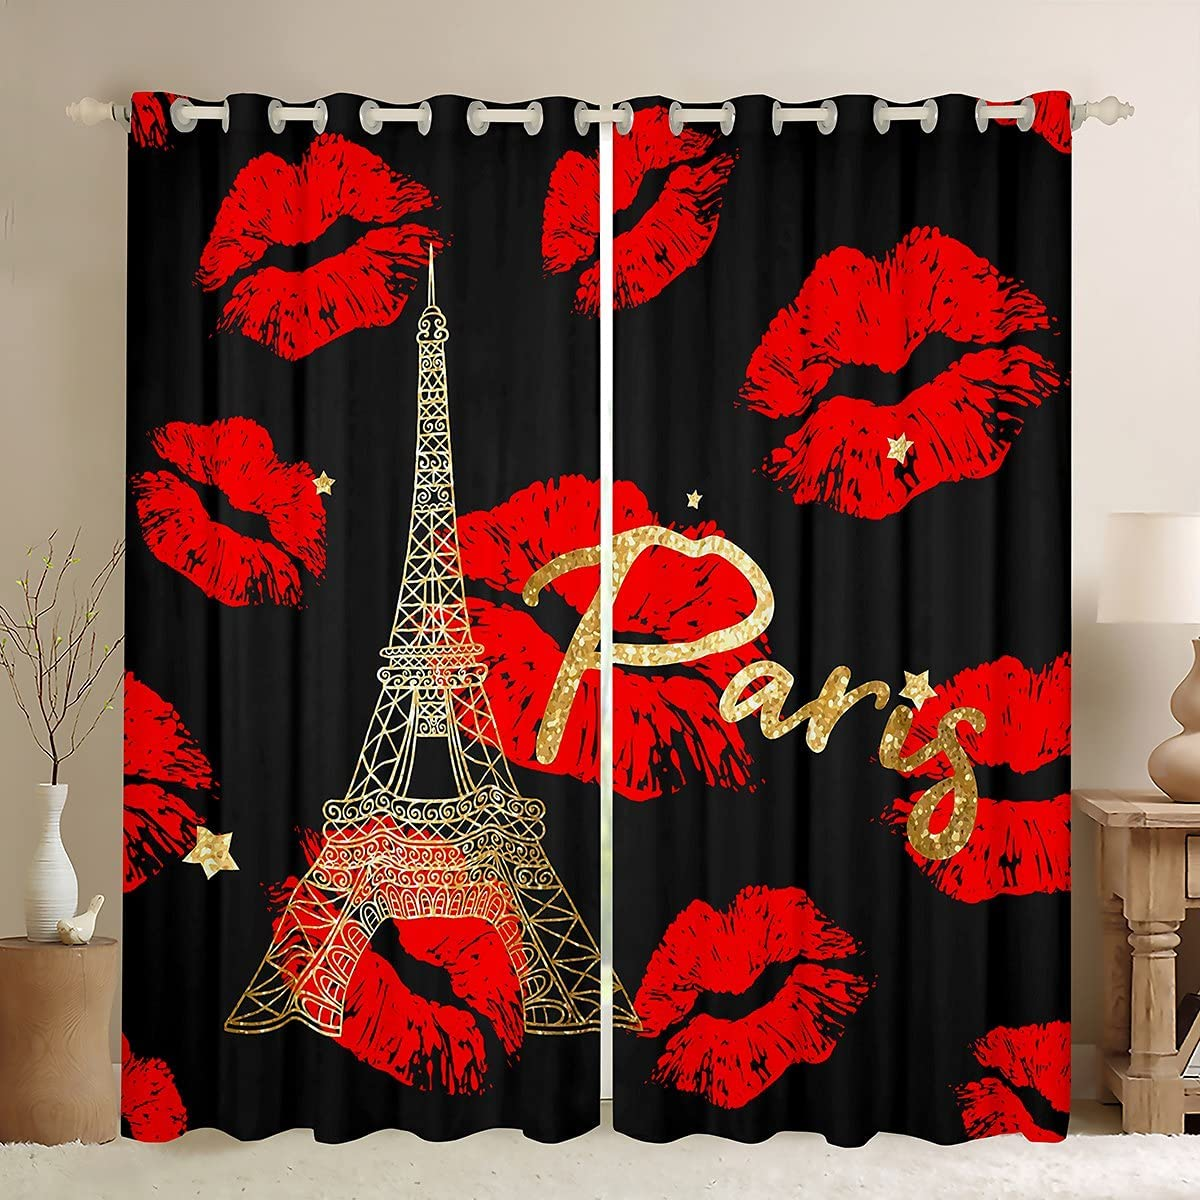 Manfei Paris Window Curtains Sexy Red Lips Kiss Marks Decor Window Drapes for Bedroom and Adults Eiffel Tower Window Treatment Grommet Top Microfiber Fabric 2 Panel Set Curtains, 84Wx84L inch